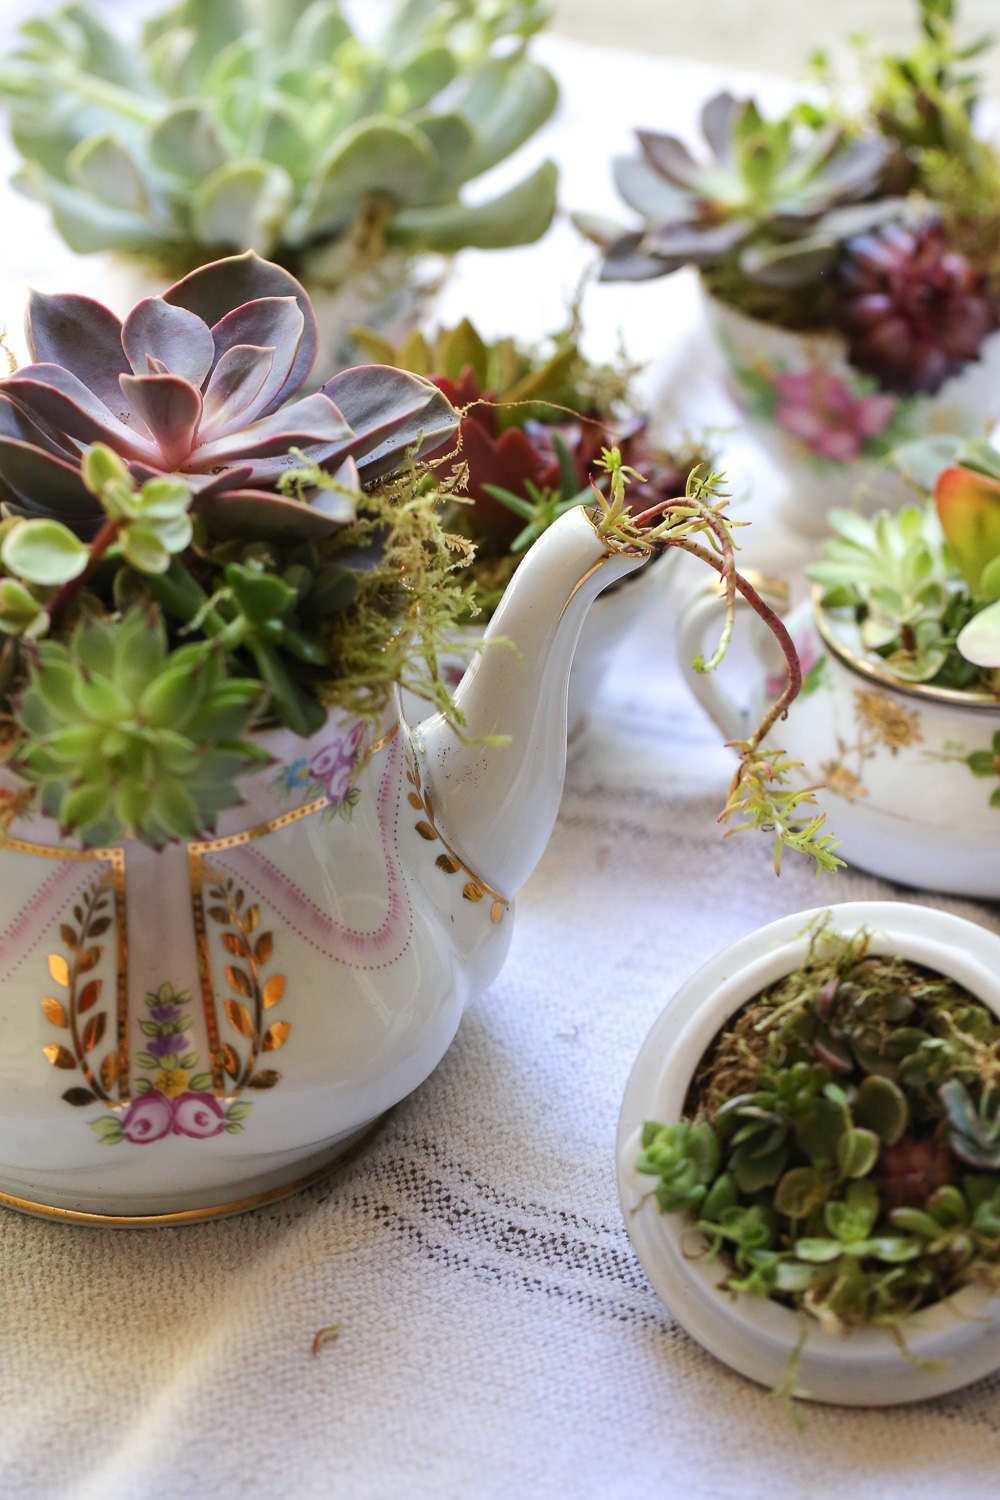 Original_Caughey-MelissaCaughey-succulent tea party 8